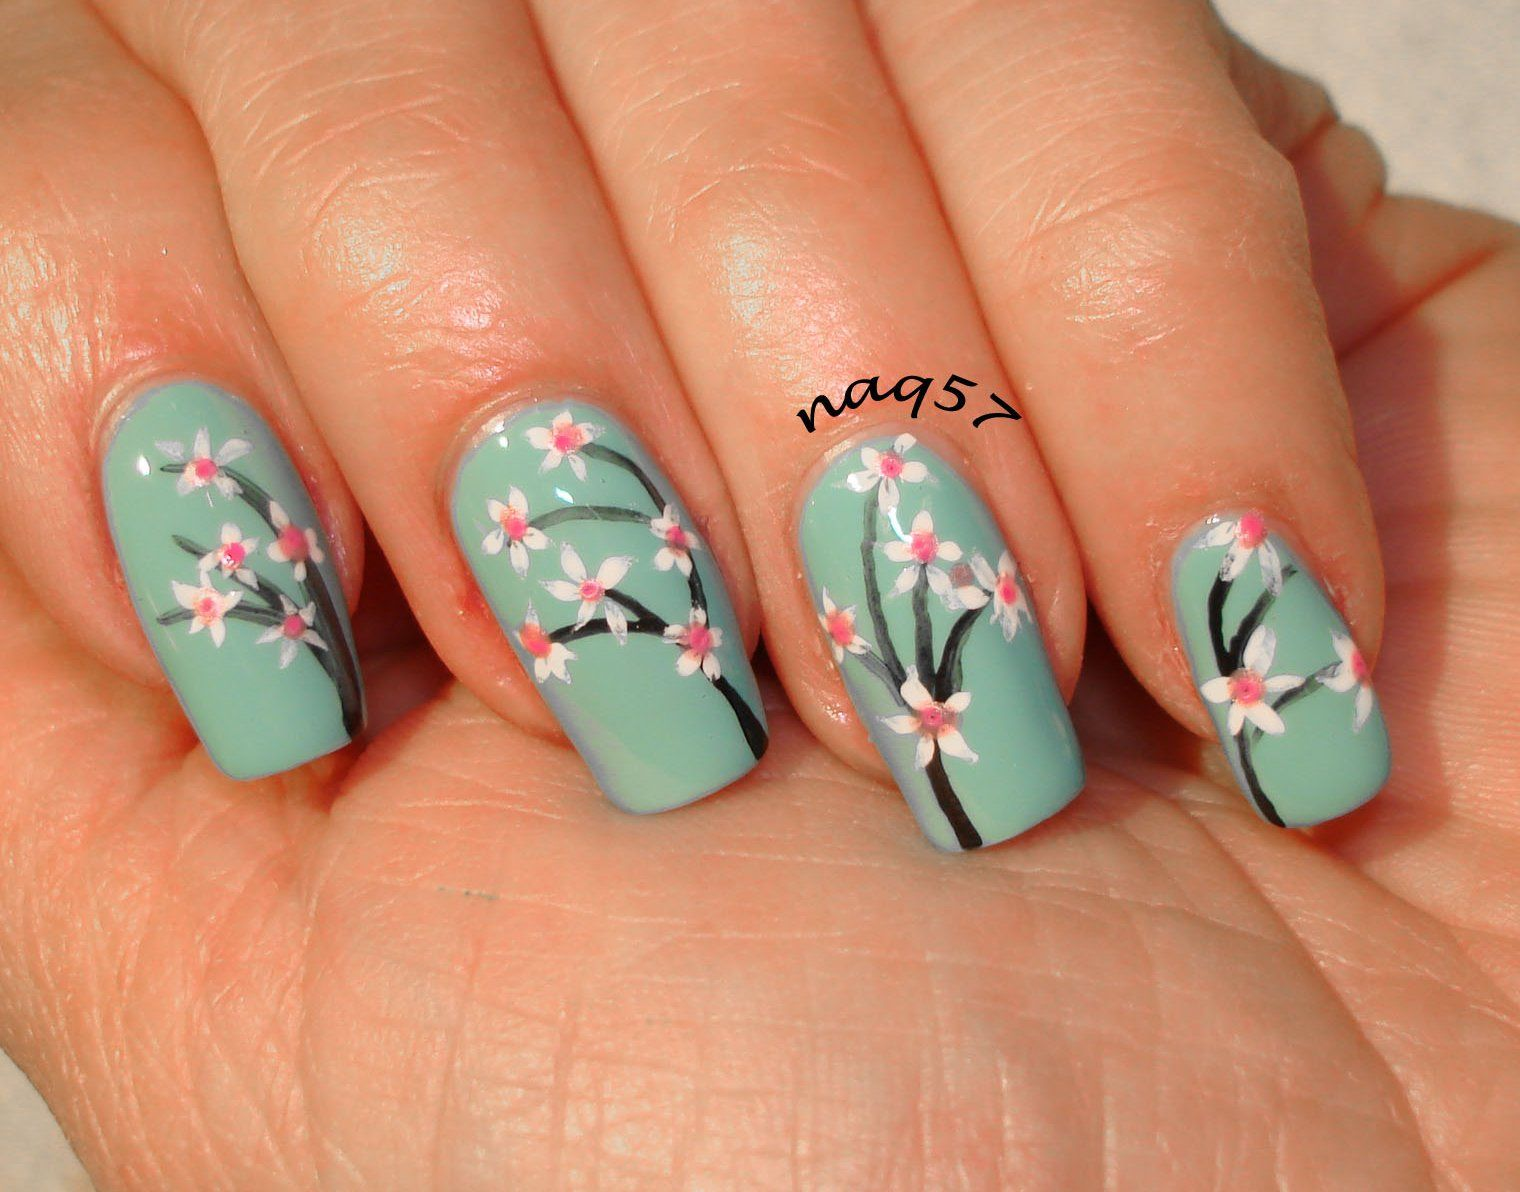 cherry blossoms freehand nail art design | nail art | Pinterest ...